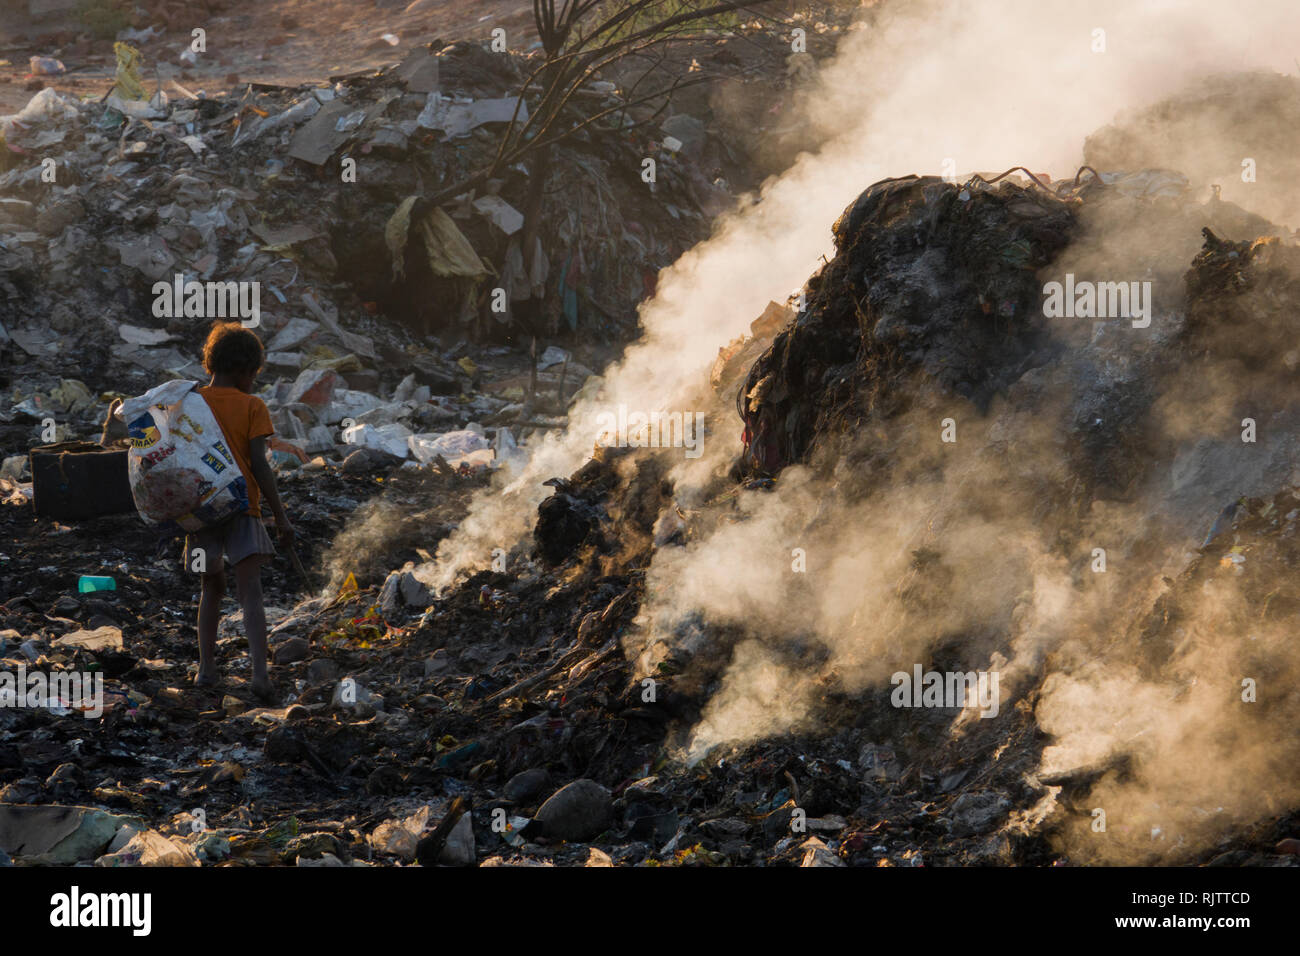 Young child collecting recyclable materials among toxic smoke from rubbish dump in Rishikesh, Uttarakhand, India - Stock Image